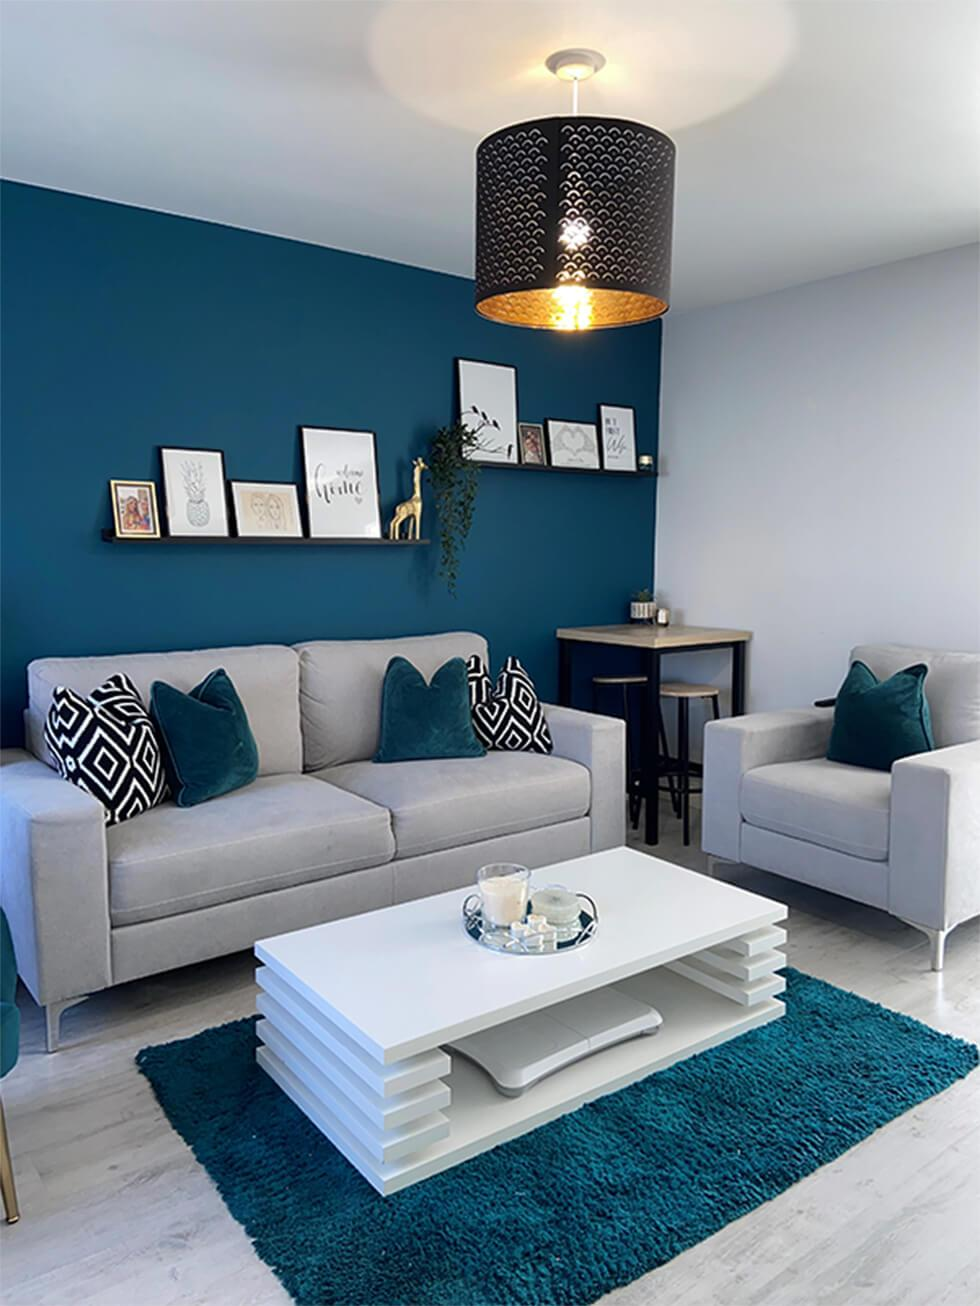 Homes We Love Bold Colour Contrasts, Teal Living Room